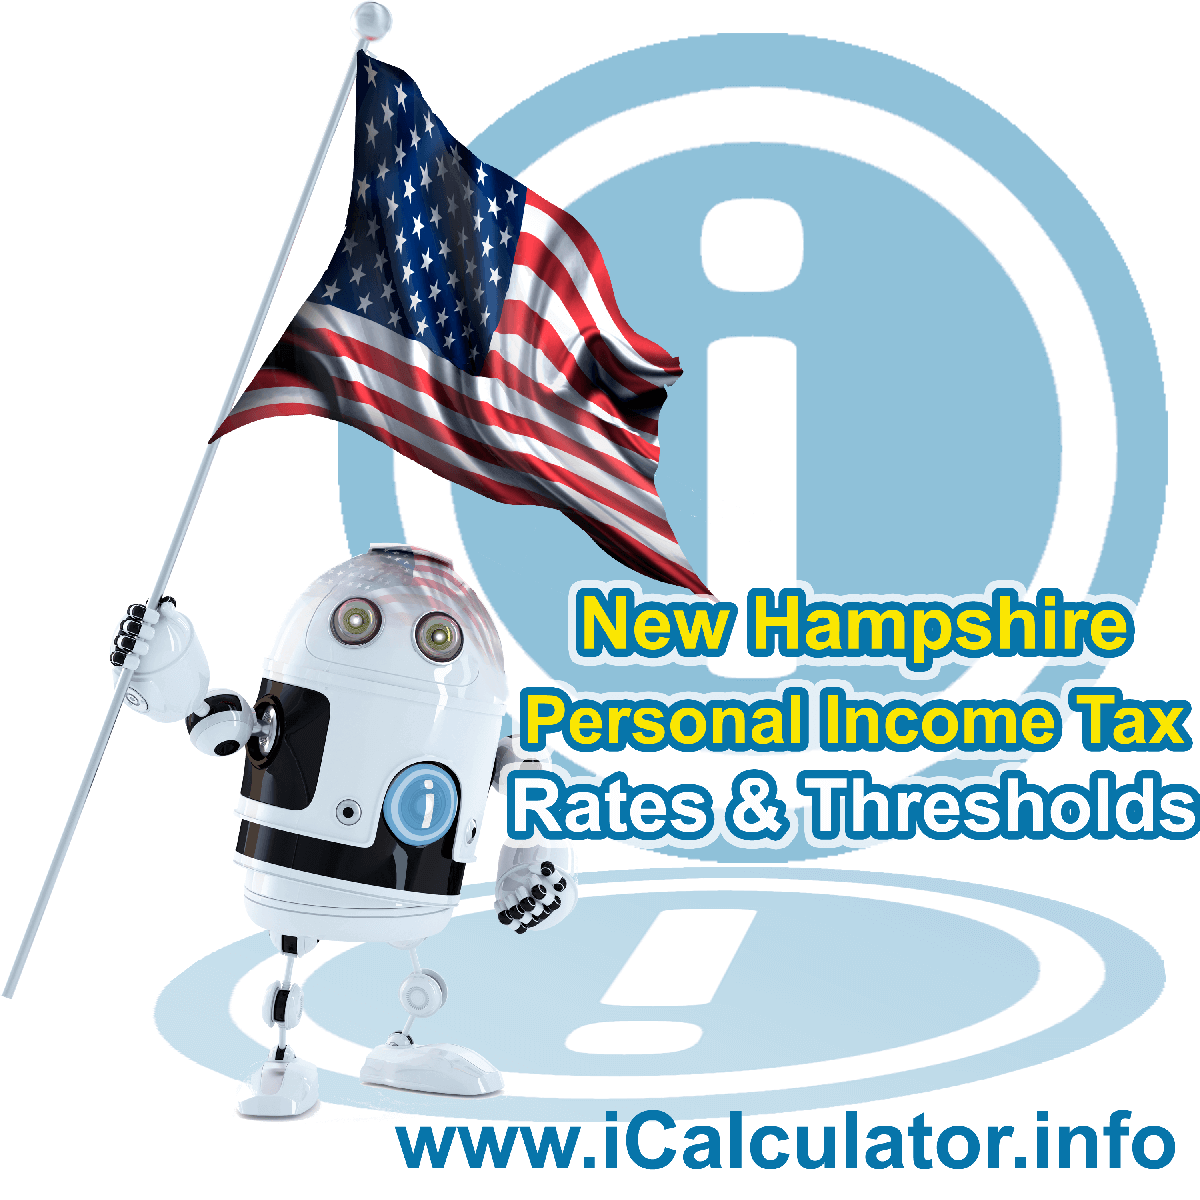 New Hampshire State Tax Tables 2020. This image displays details of the New Hampshire State Tax Tables for the 2020 tax return year which is provided in support of the 2020 US Tax Calculator